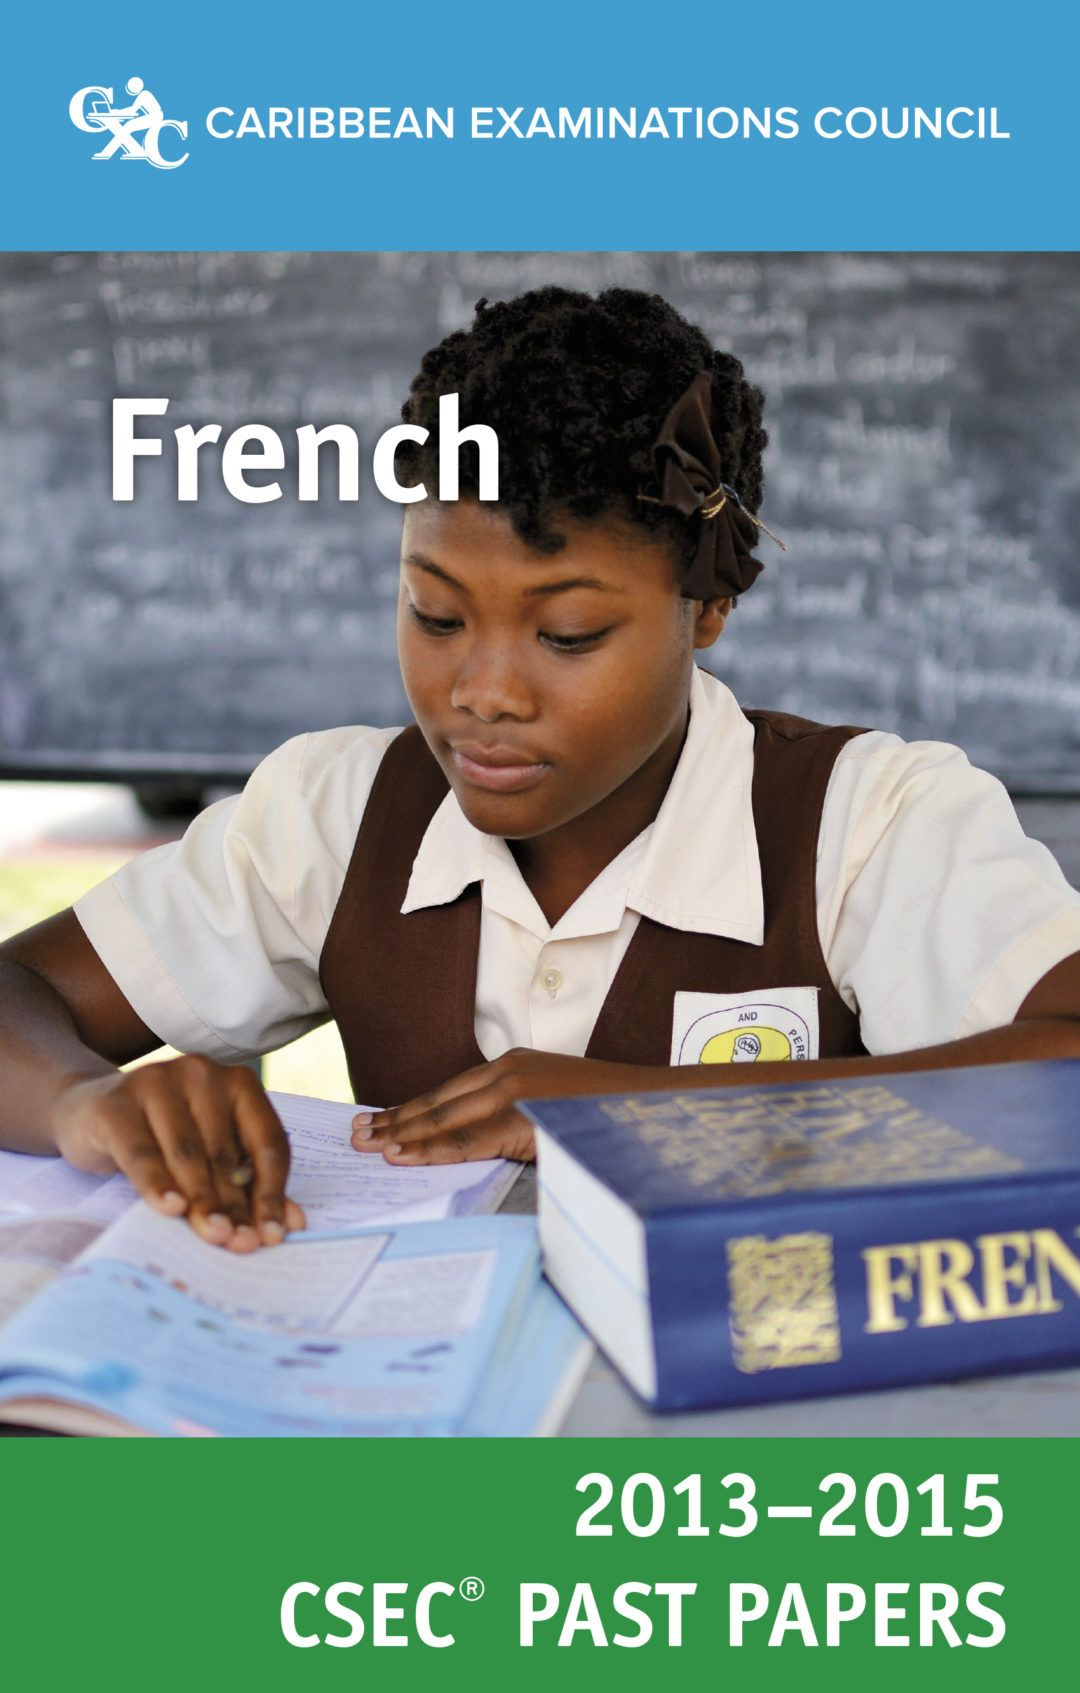 Csec past papers 2013 2015 french cave caribbean examination council 2013 2015 csec past papers french fandeluxe Gallery